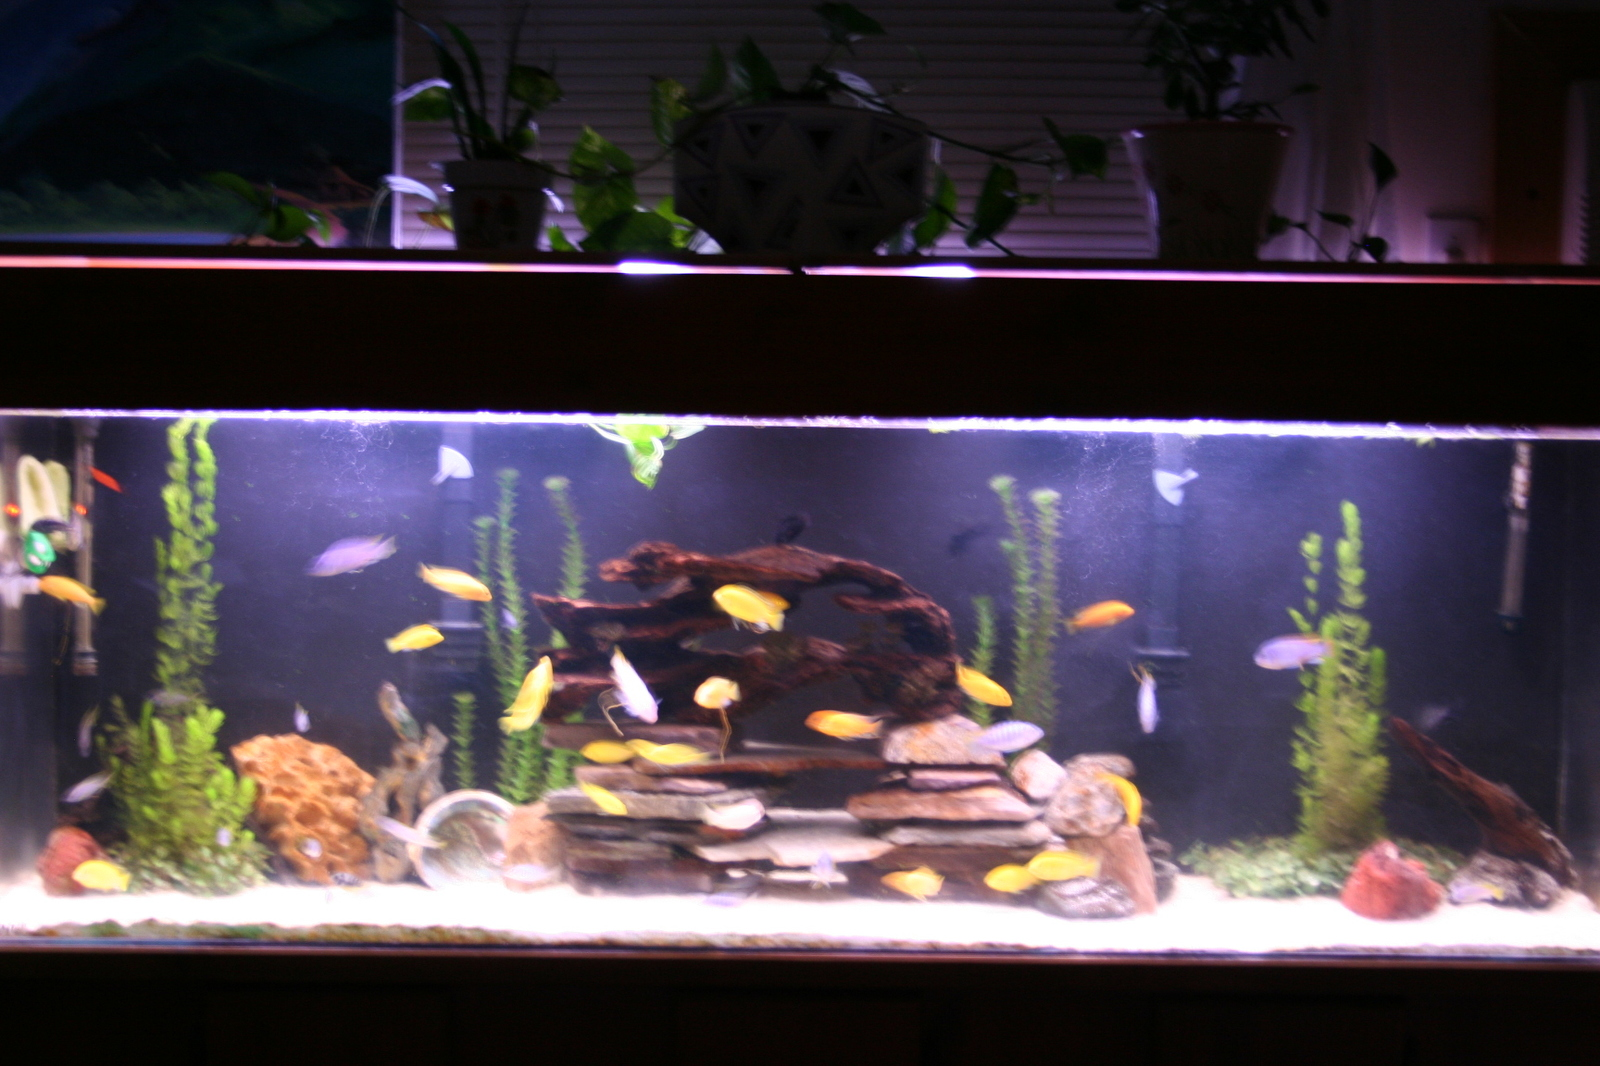 My New Mbuna Set Up | by Sleek Sliders